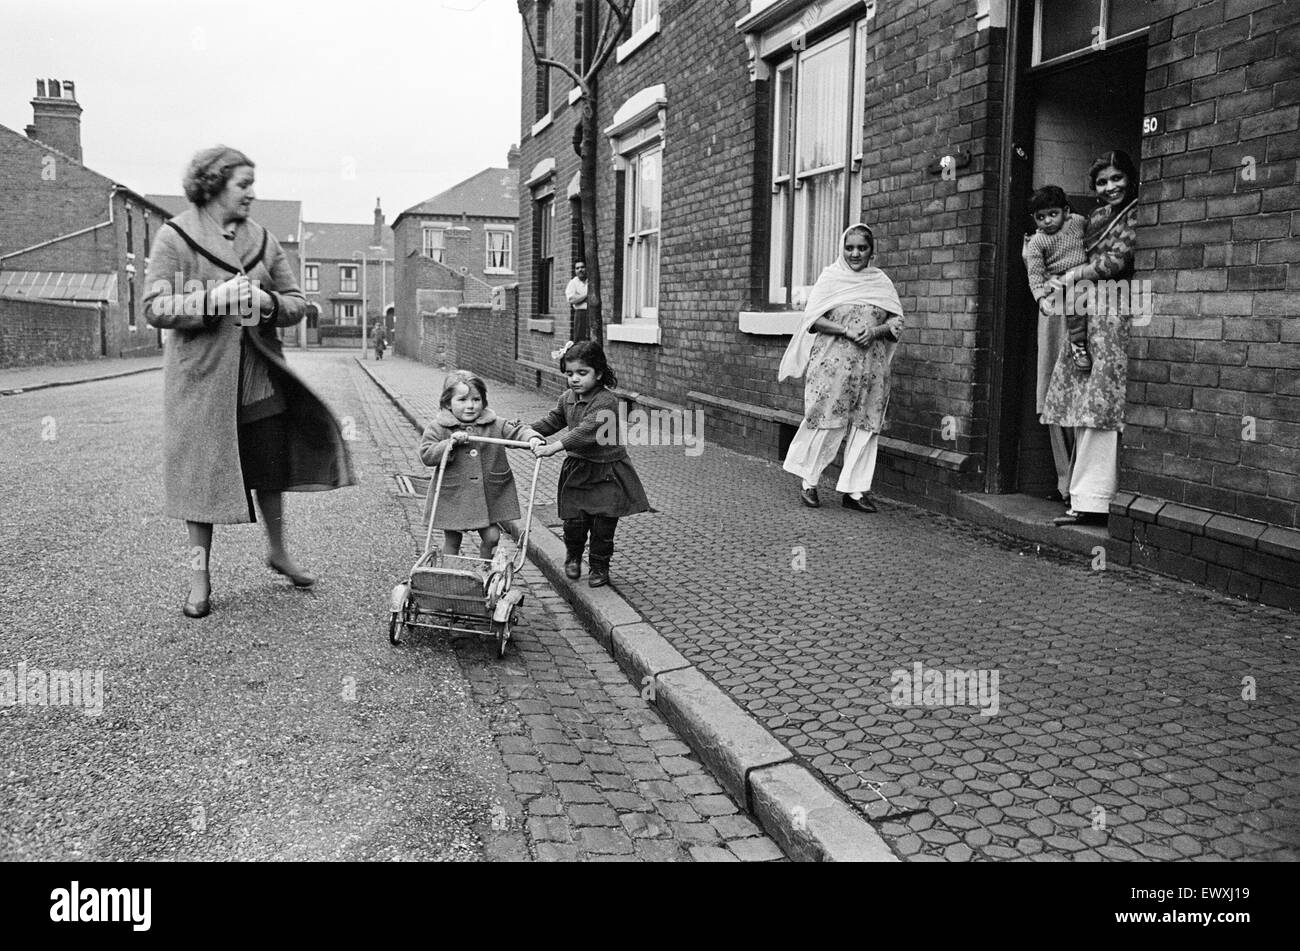 Marshall Street, Smethwick, a town in the Sandwell Metropolitan Borough, in the West Midlands of England. 7th December - Stock Image